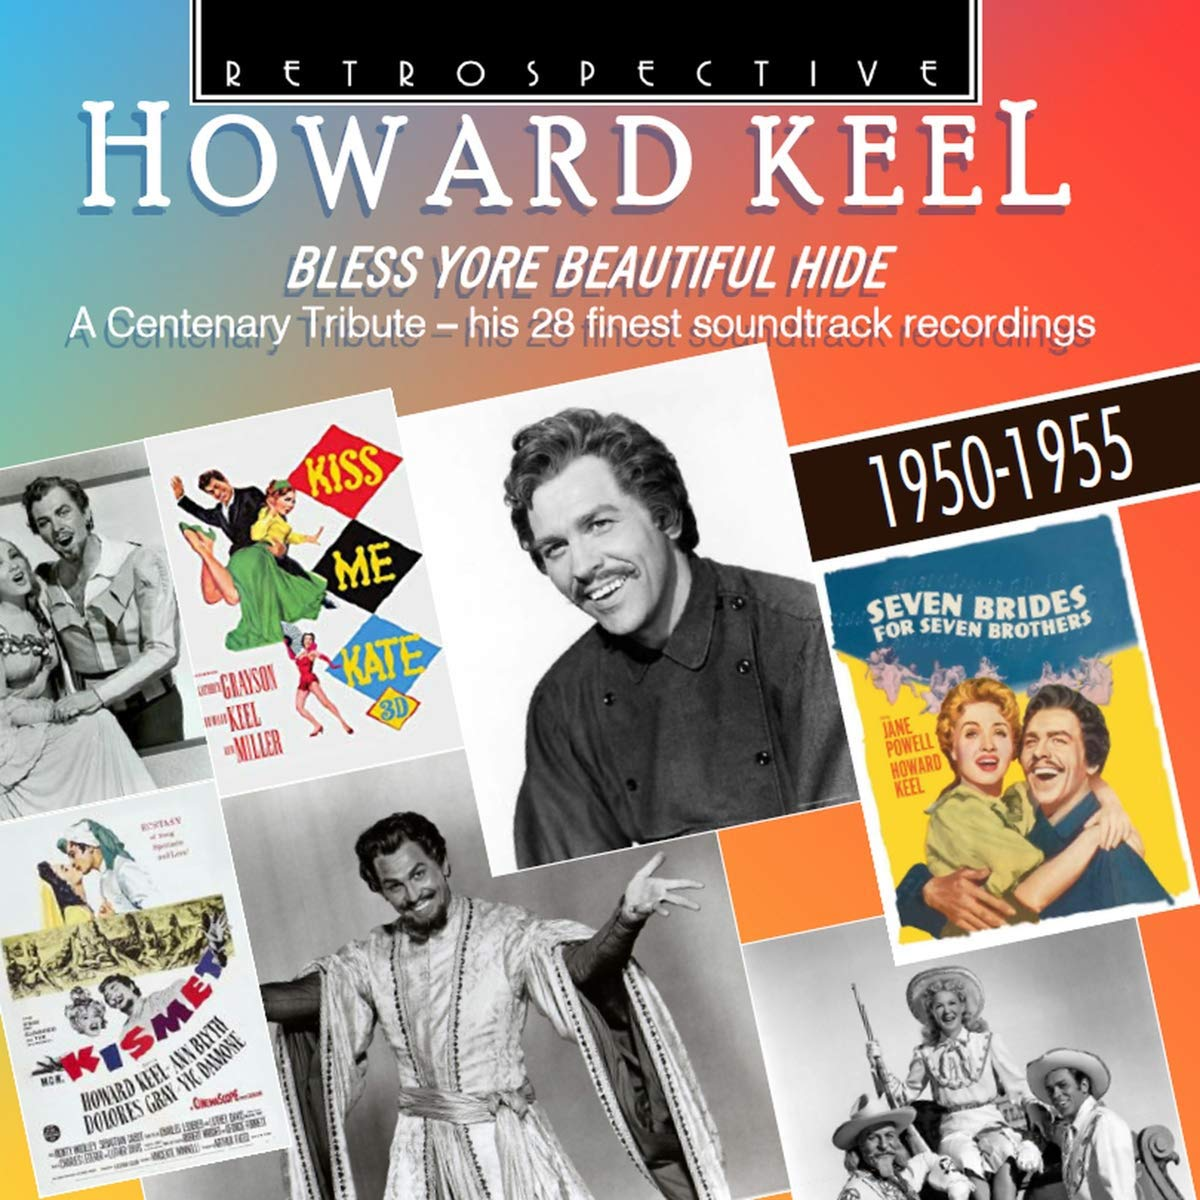 Howard Keel: Bless Yore Beautiful Hide - A Centenary Tribute, His 28 Finest soundtrack recordings 1950-1955